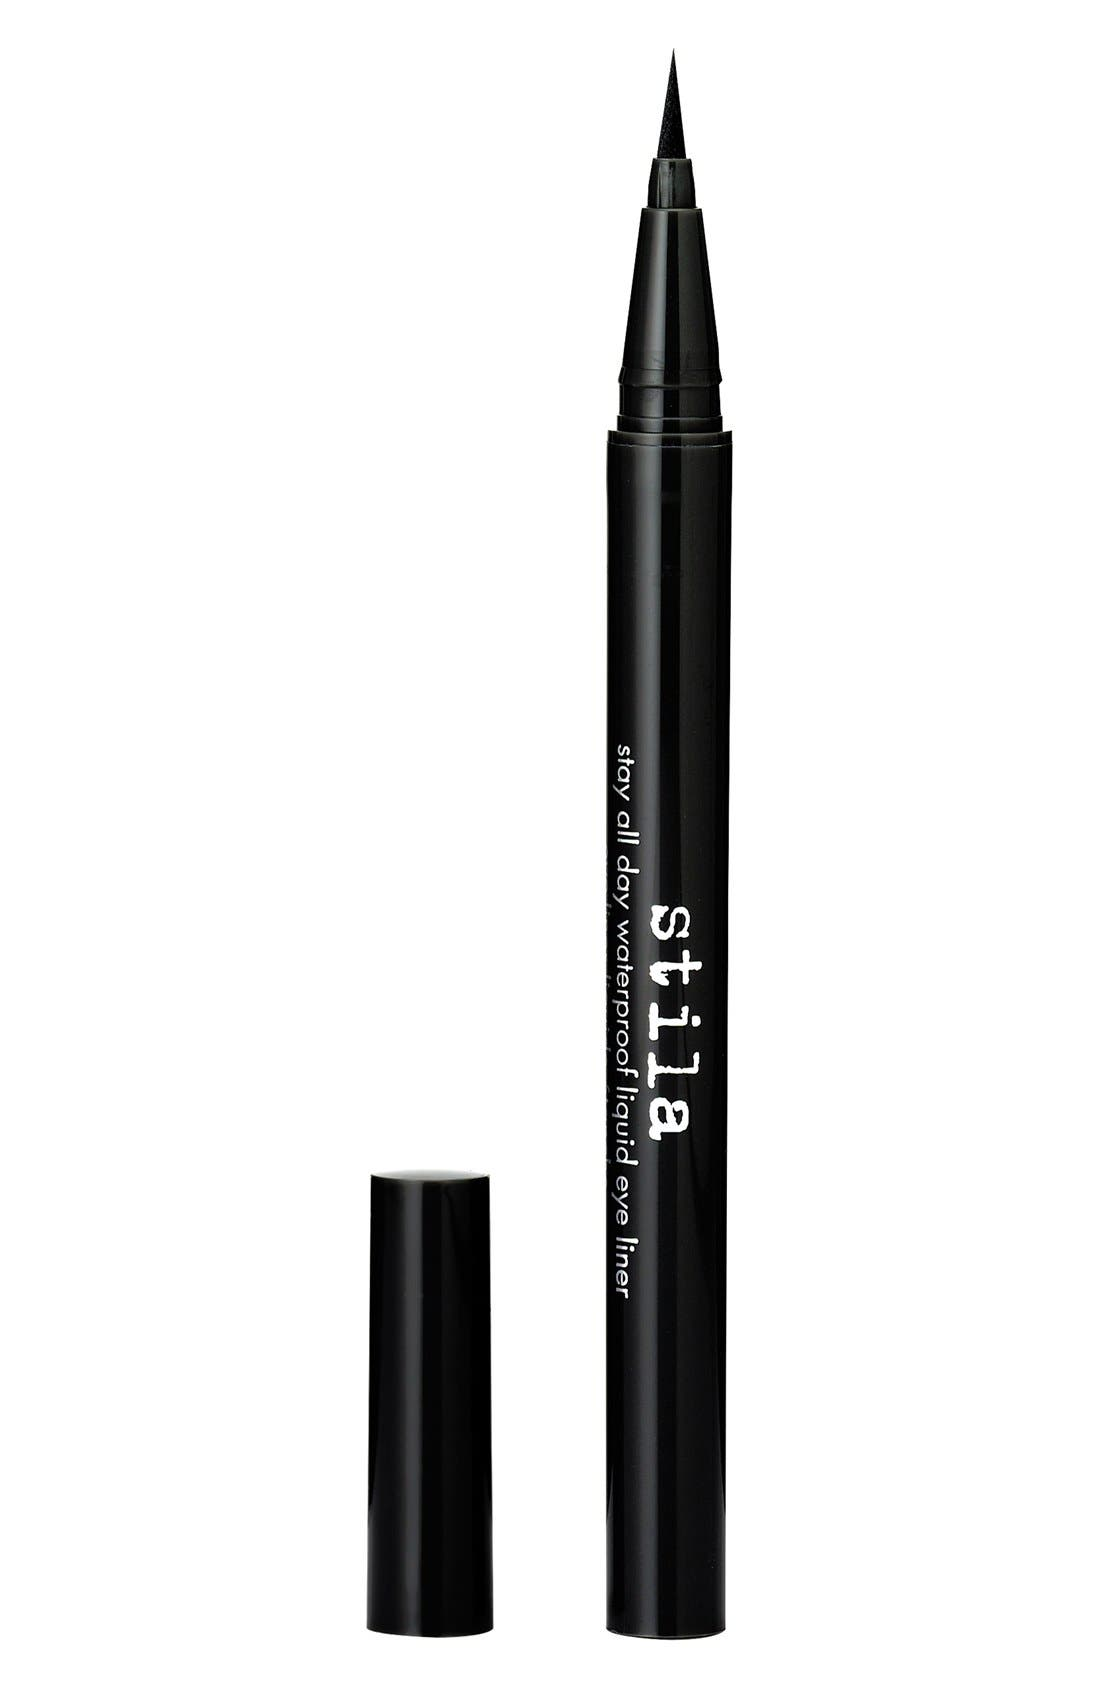 Stila Eyeliner – Shop Colored Eyeliner from Designer Brands ...